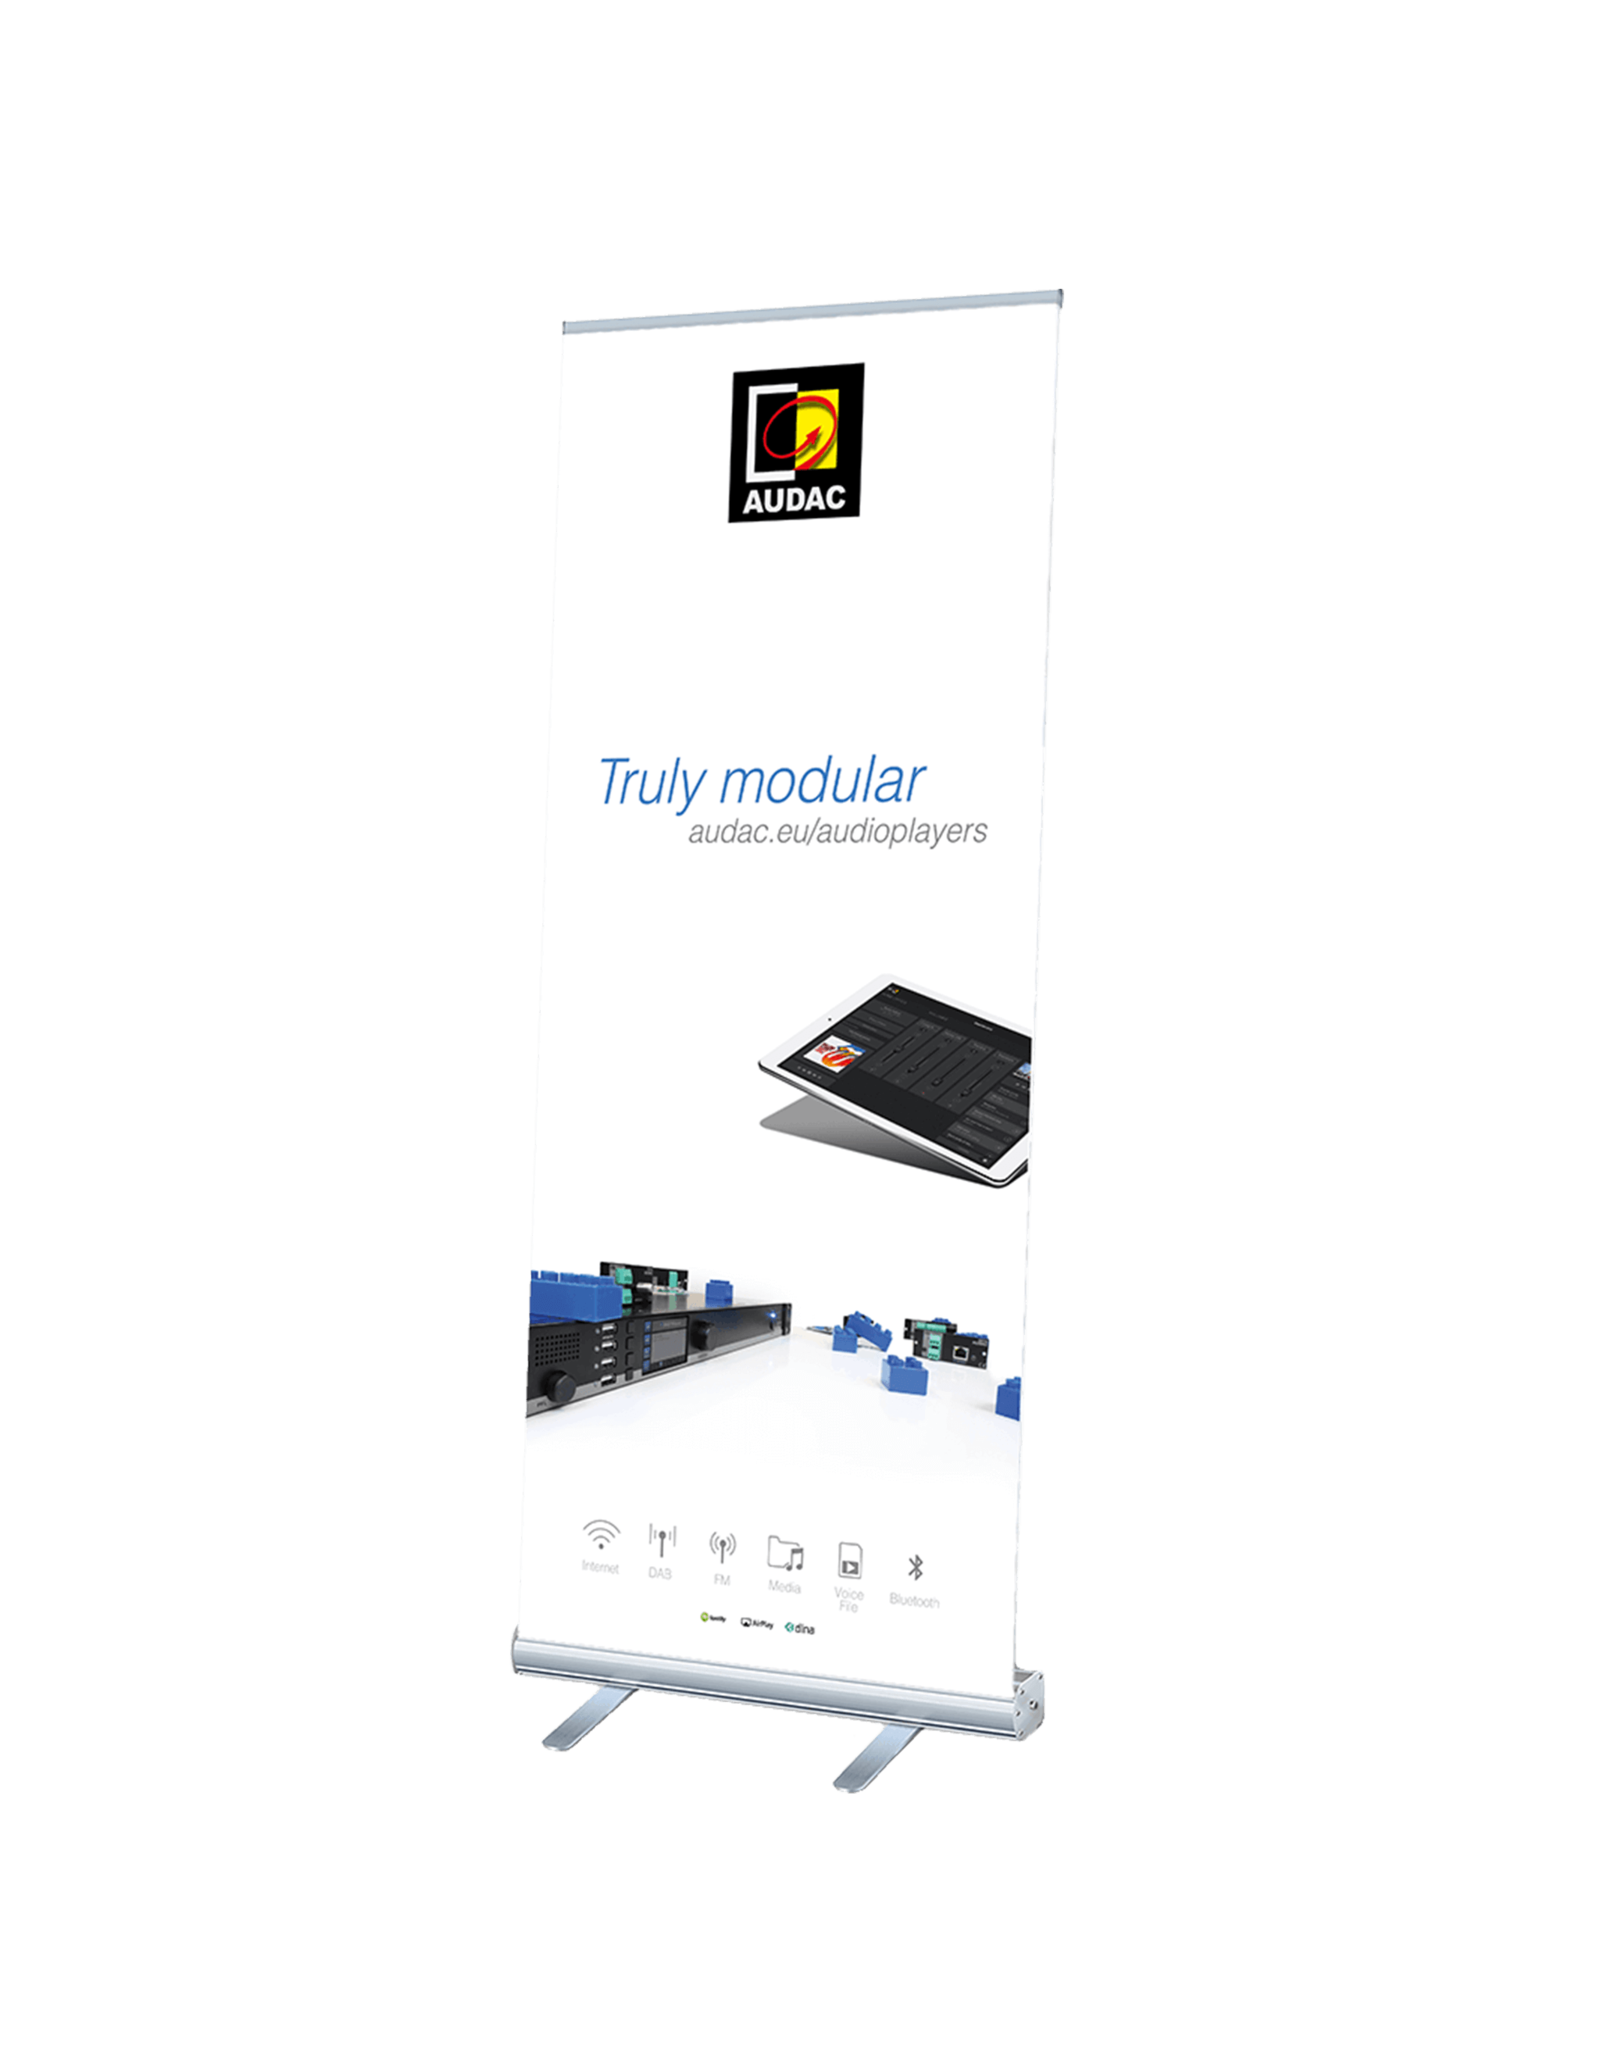 Audac AUDAC audioplayers roll-up display